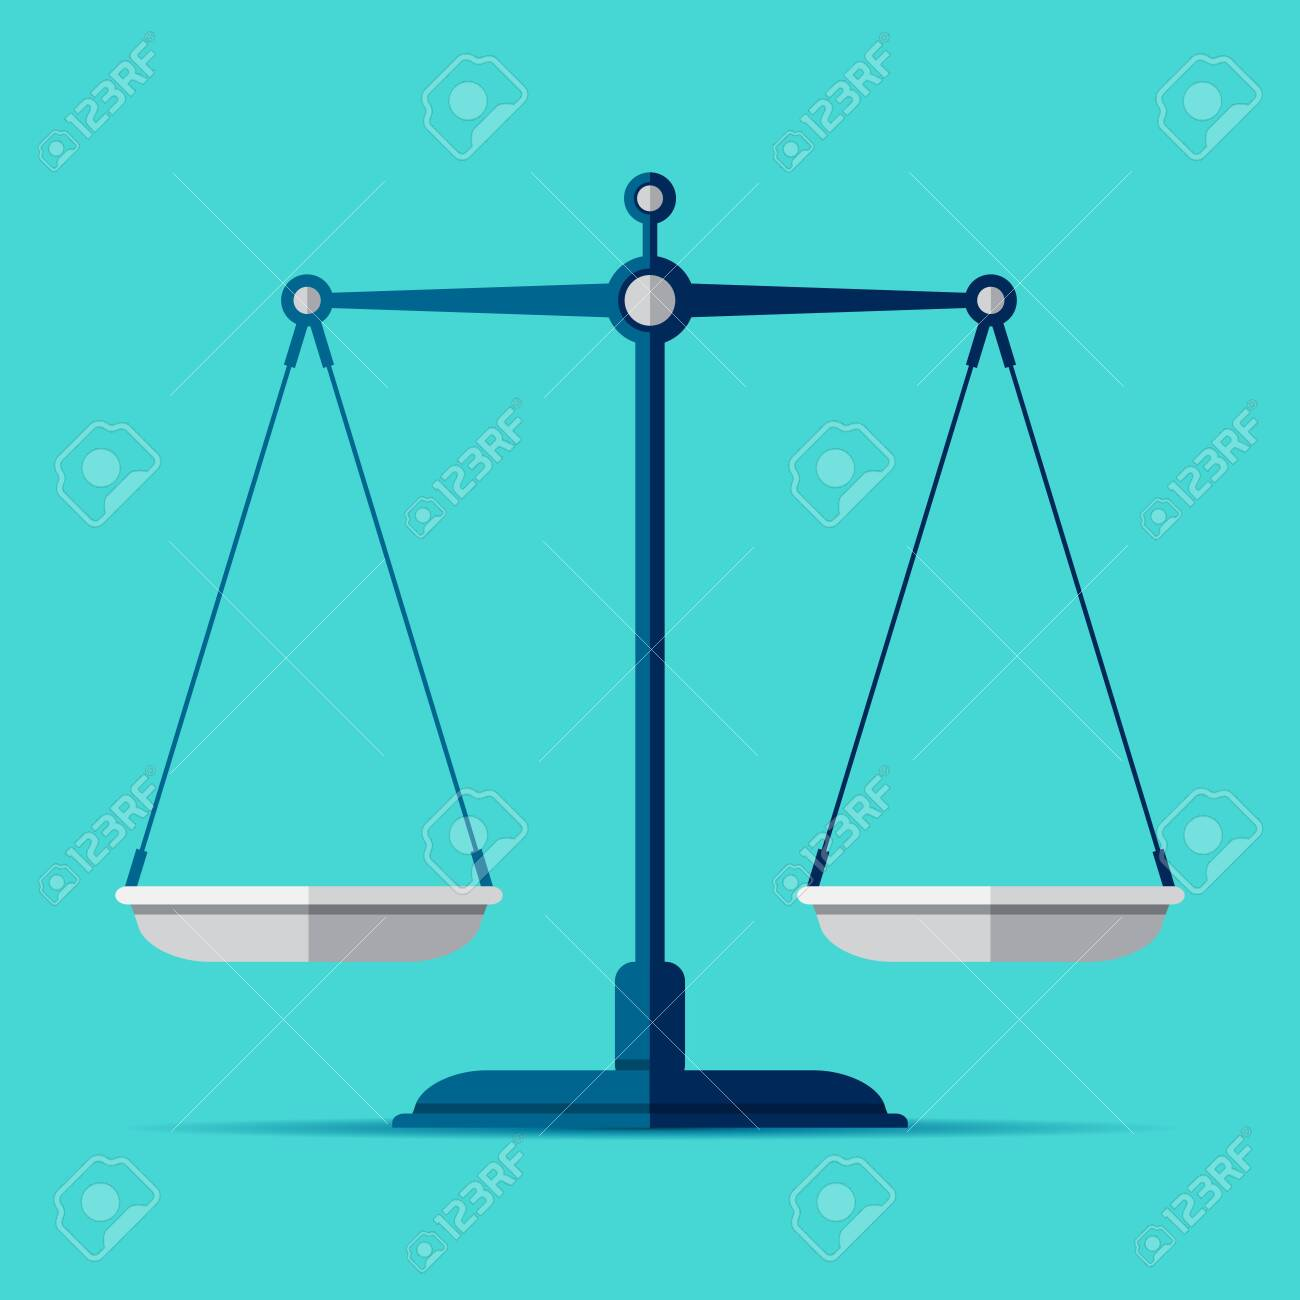 Scales icon in flat style. Libra symbol, balance sign. Vector design element for you project on color background - 143261906